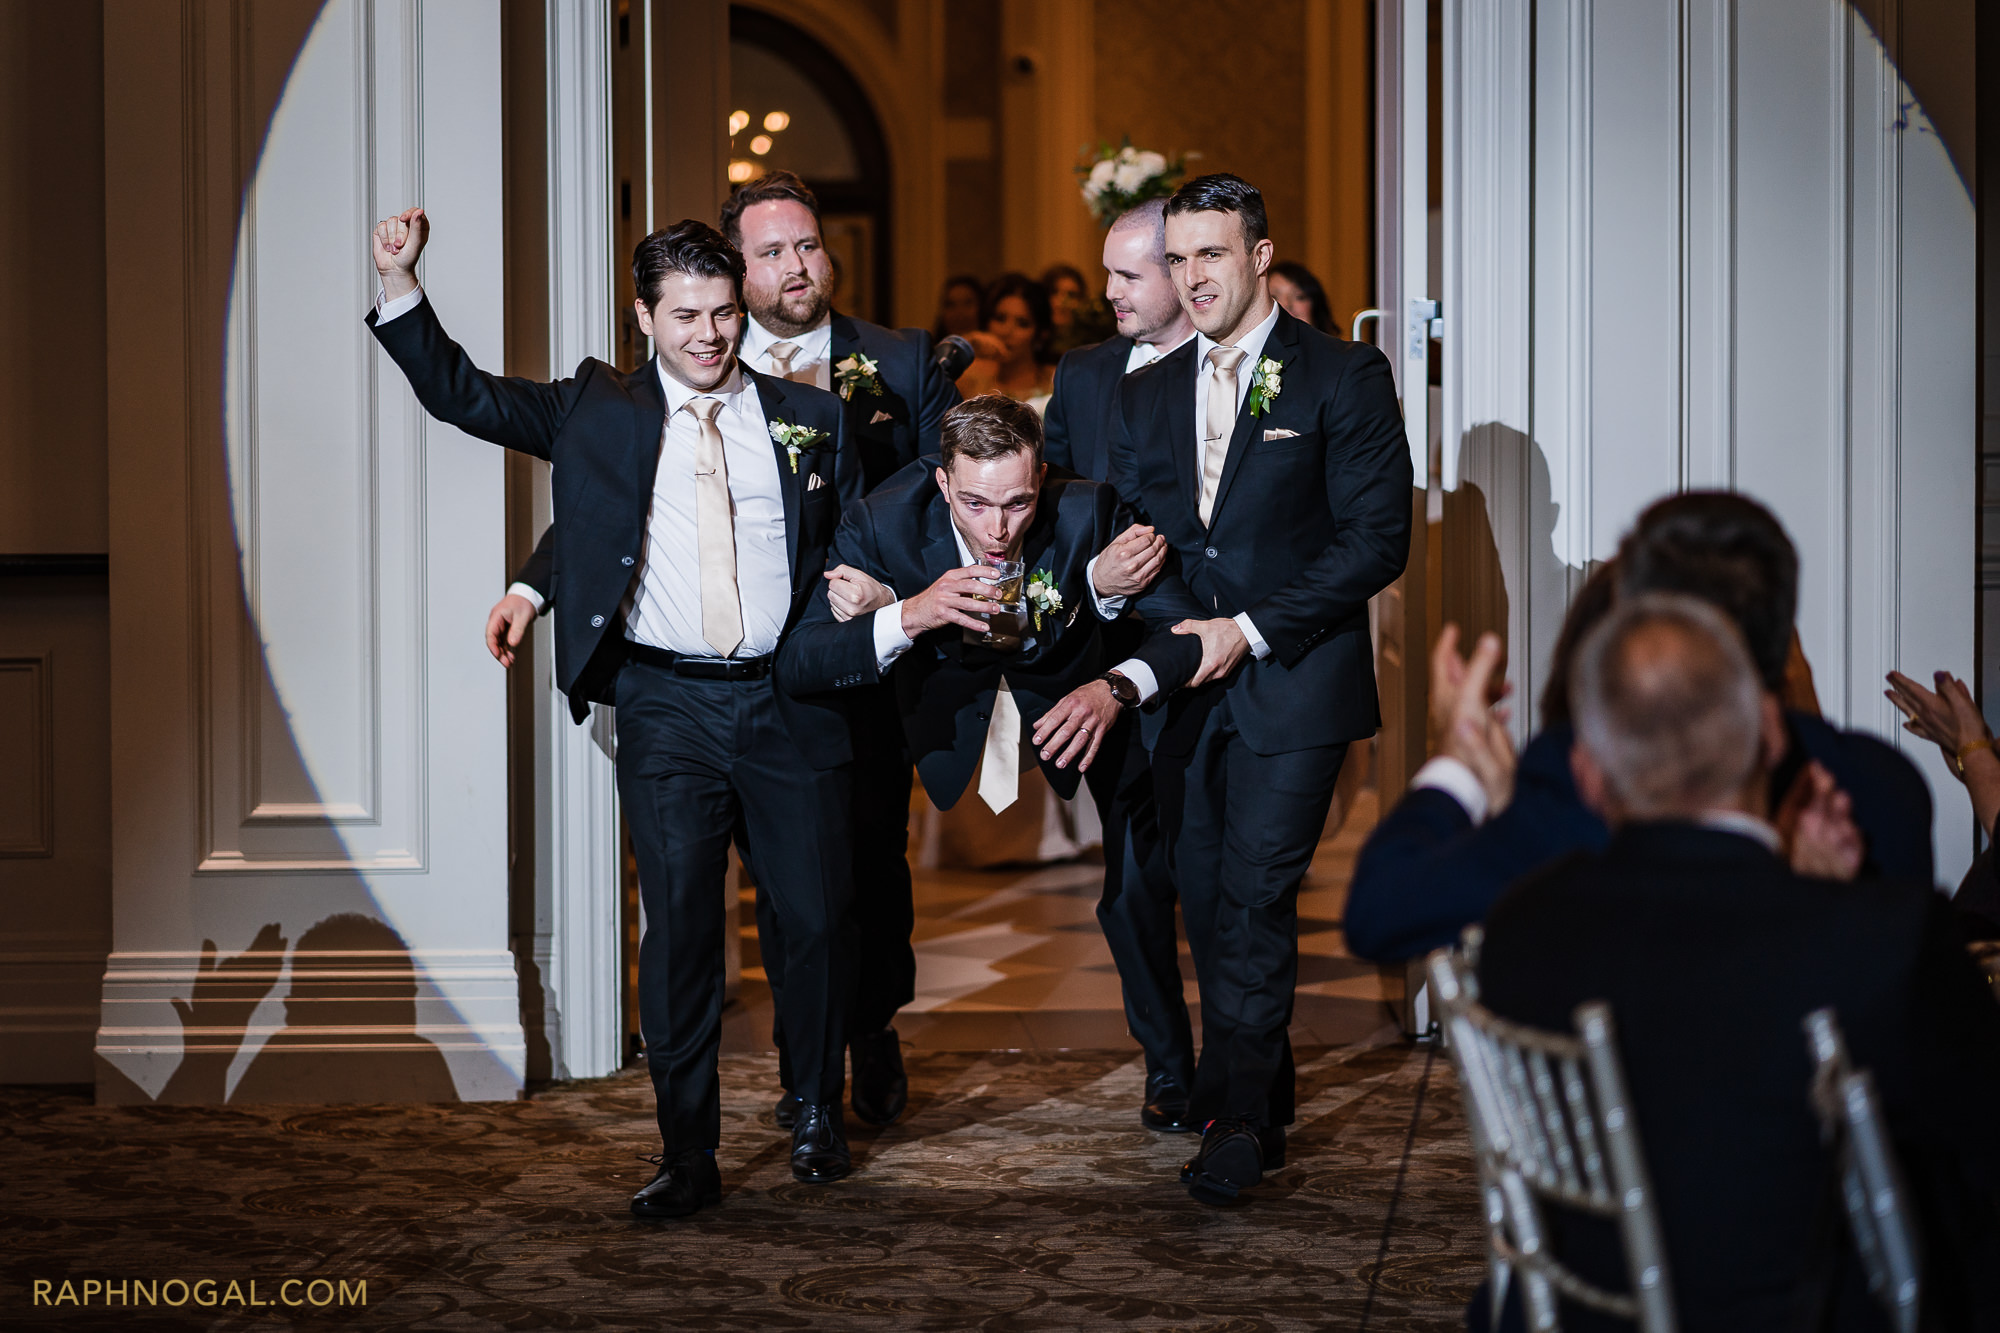 Groomsmen comedic reception entrance at Hazelton Manor